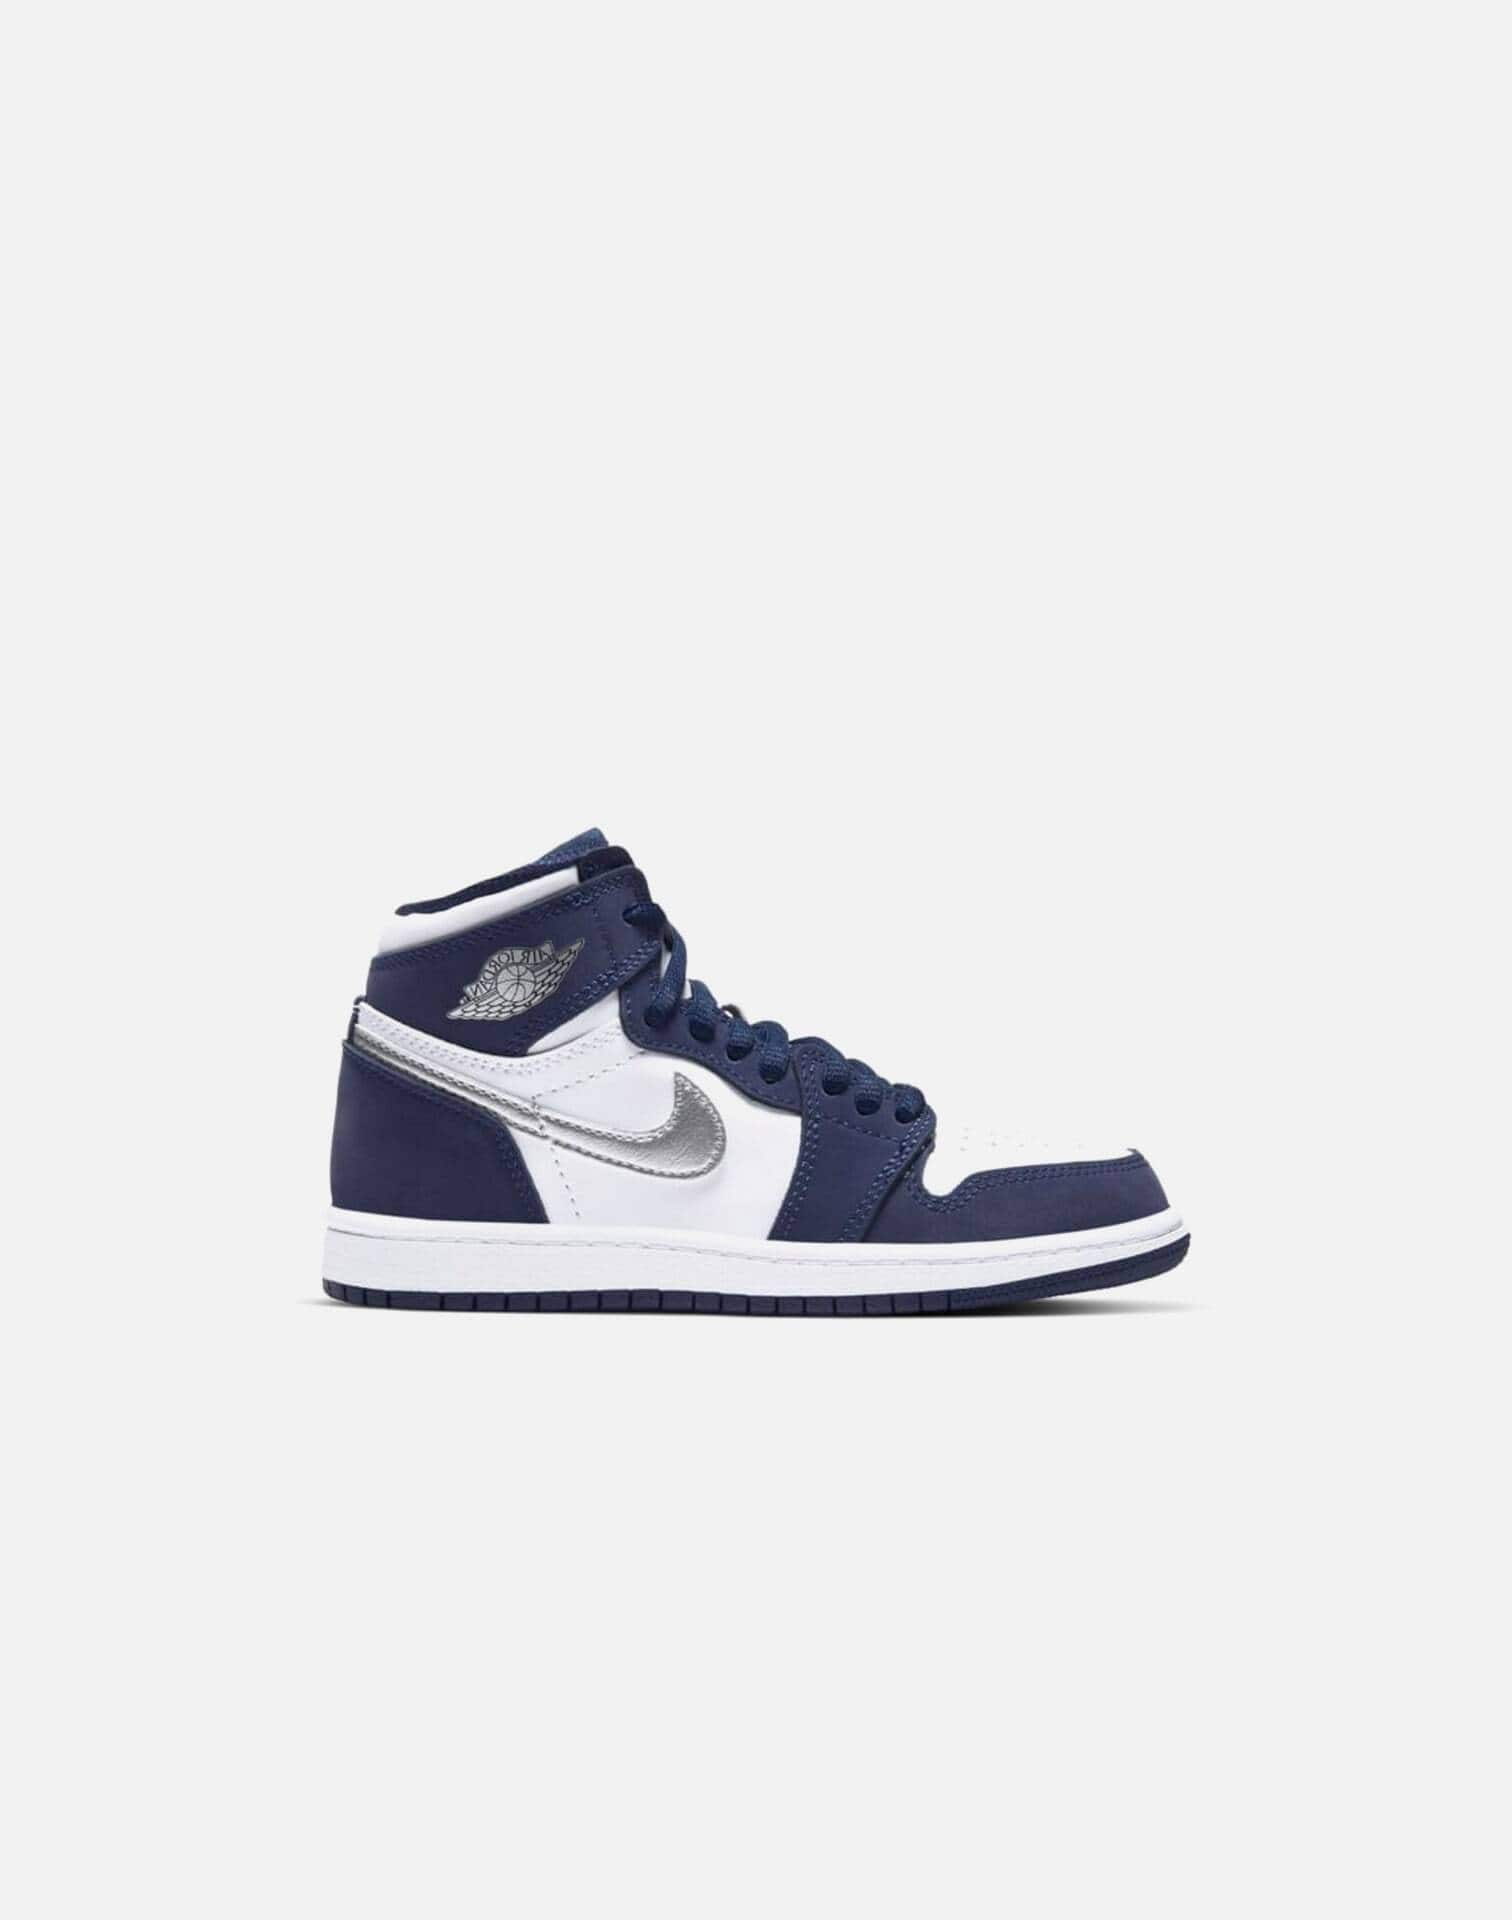 Jordan AIR JORDAN RETRO 1 HIGH OG CO.JP 'JAPAN' PRE-SCHOOL